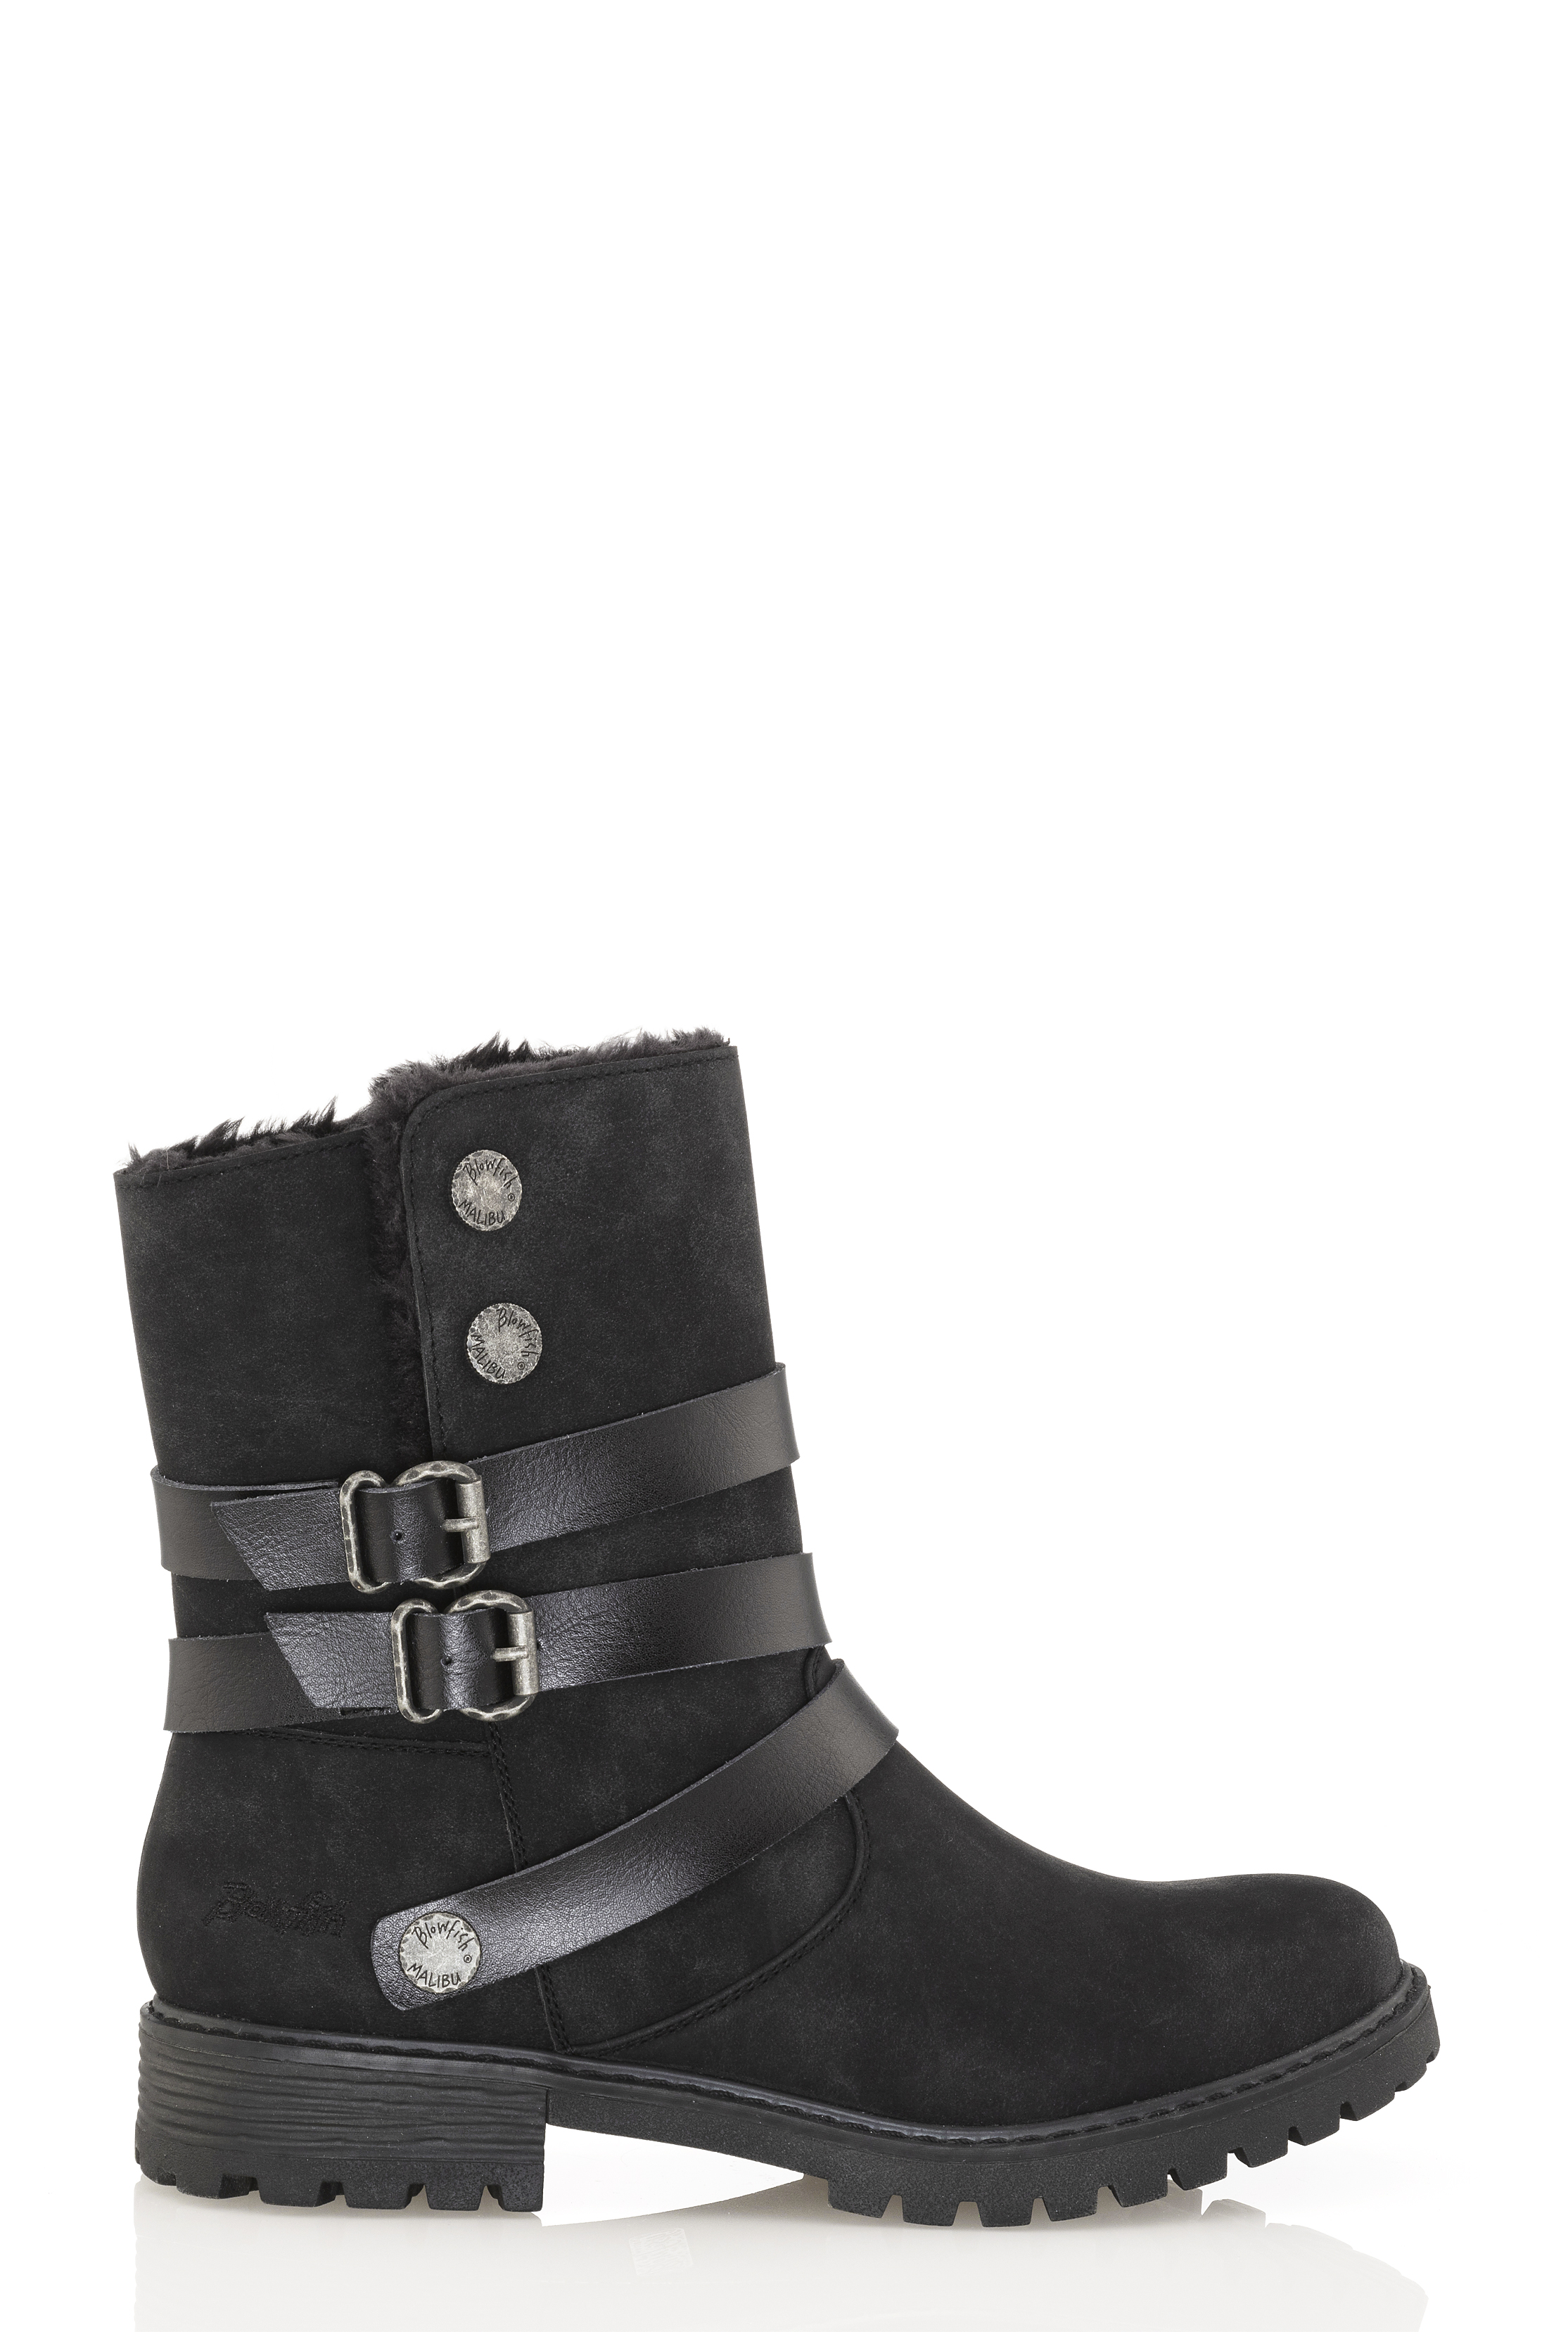 Blowfish Radiki Shr Boot